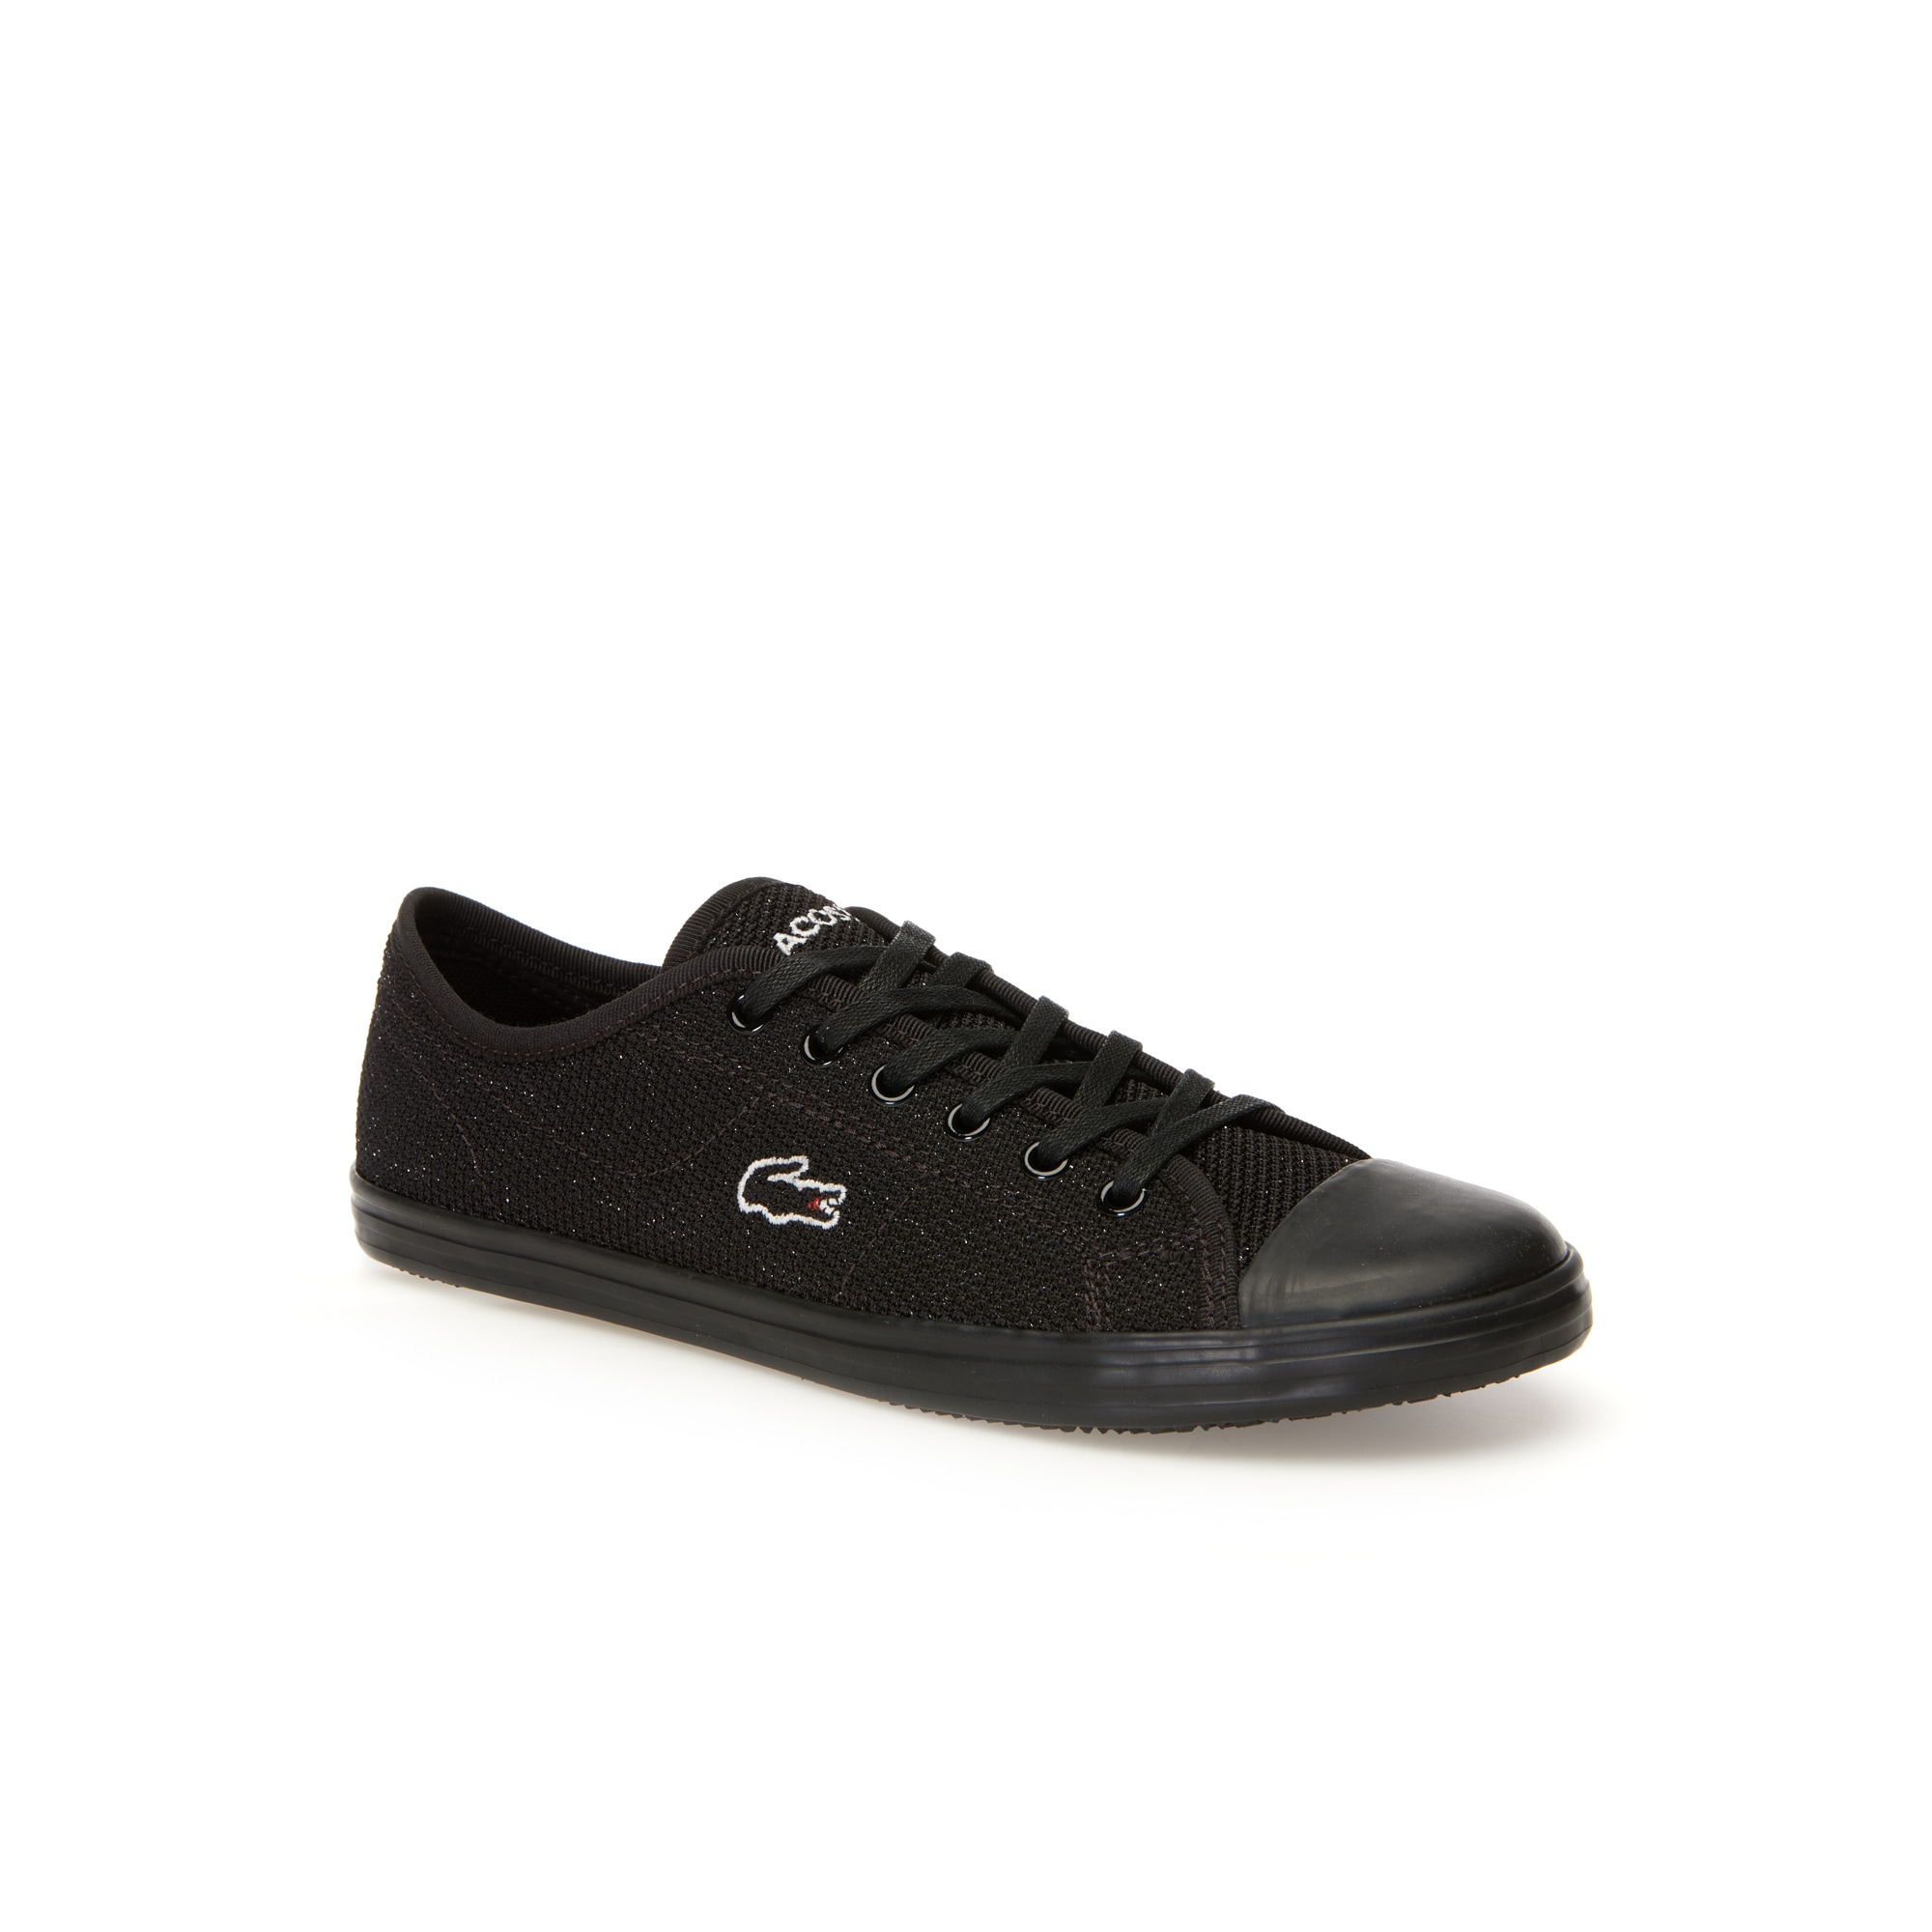 3f7b961a643 Polo shirts, shoes, leather goods | LACOSTE Online Boutique